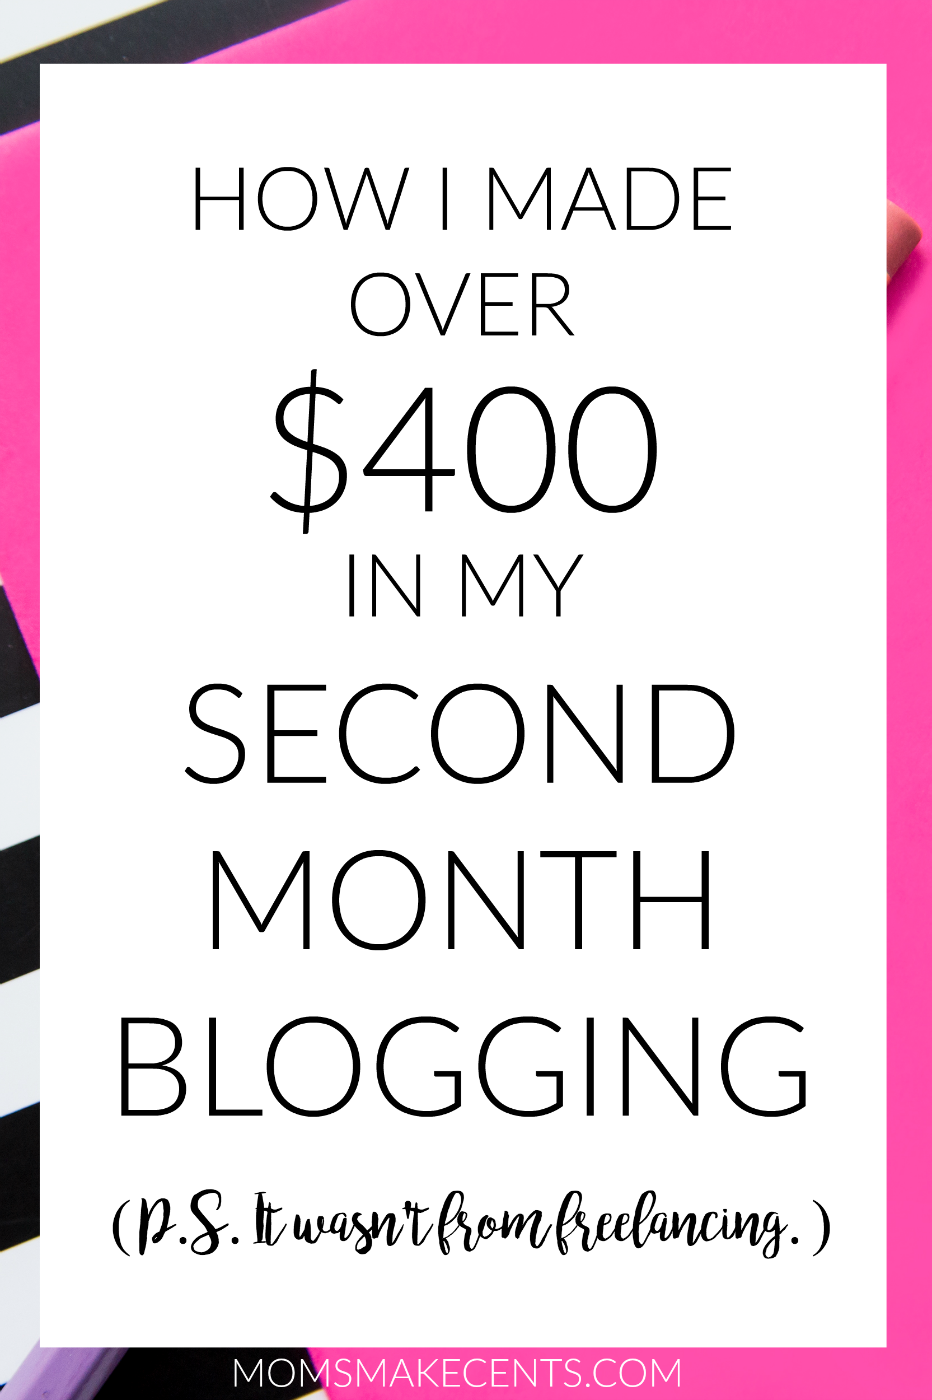 How I Made Over $400 In My Second Month Blogging